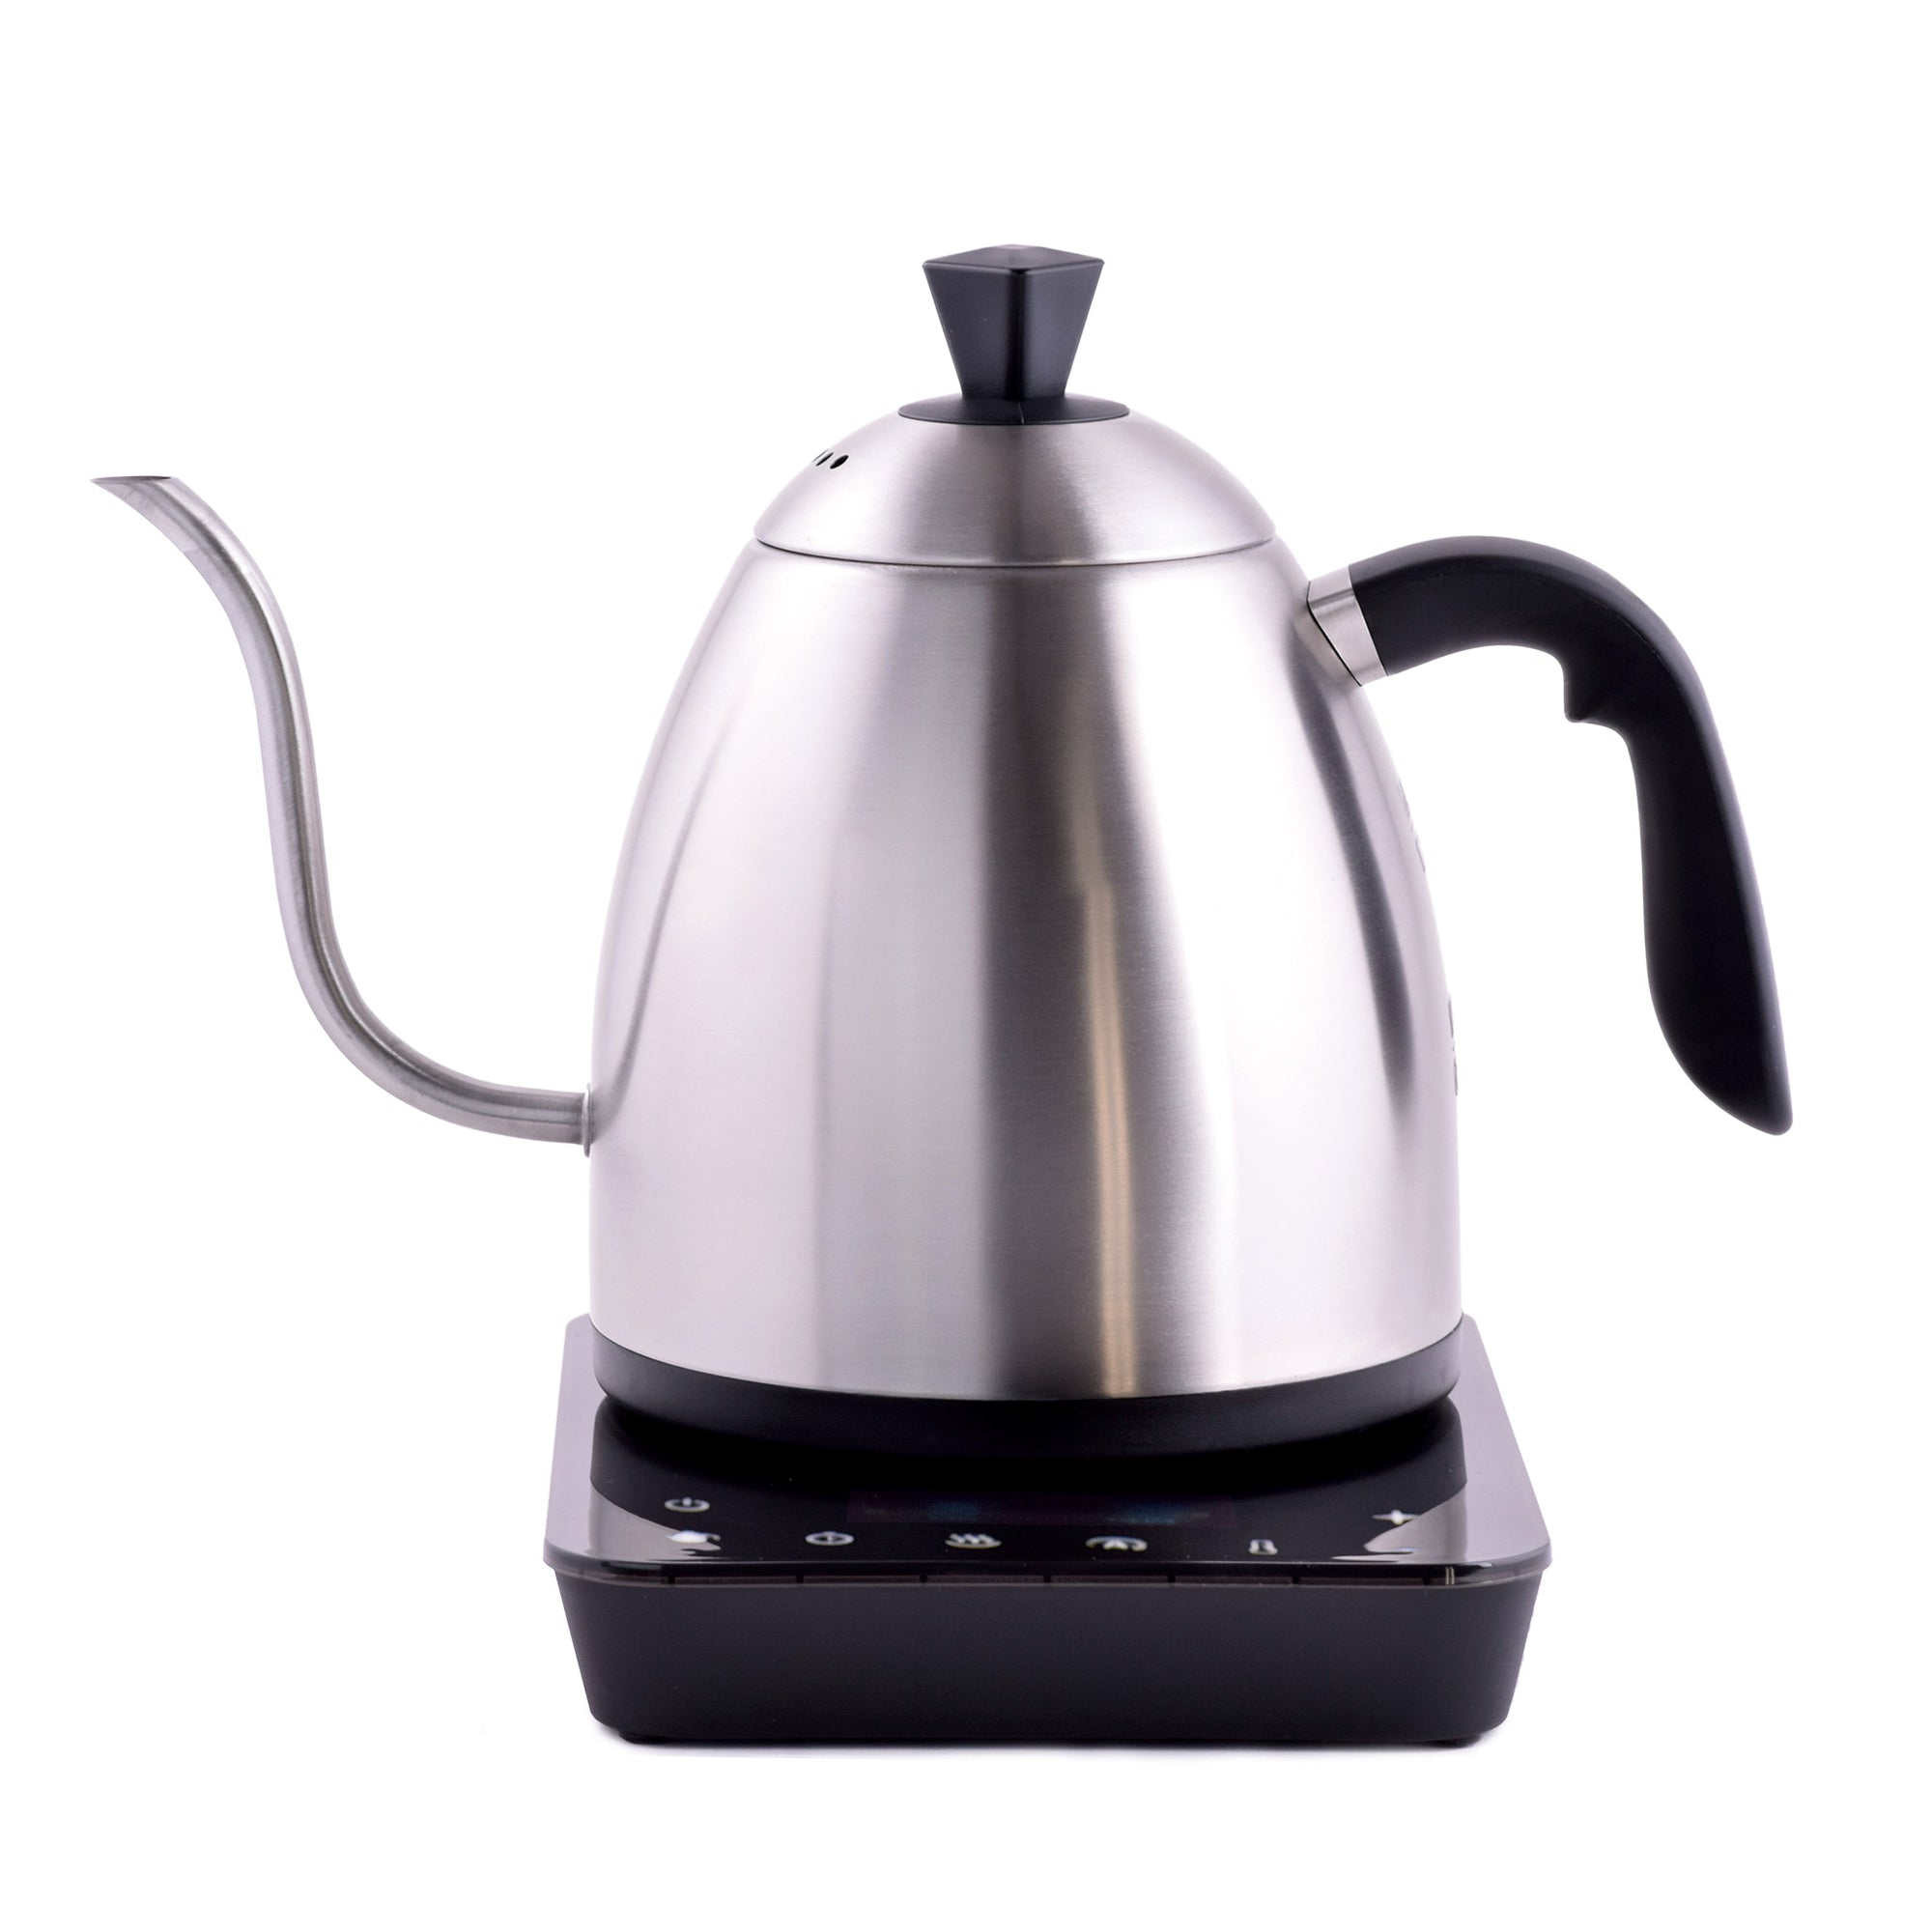 Kettle Smart2 1.2L - Brewista - Espresso Gear